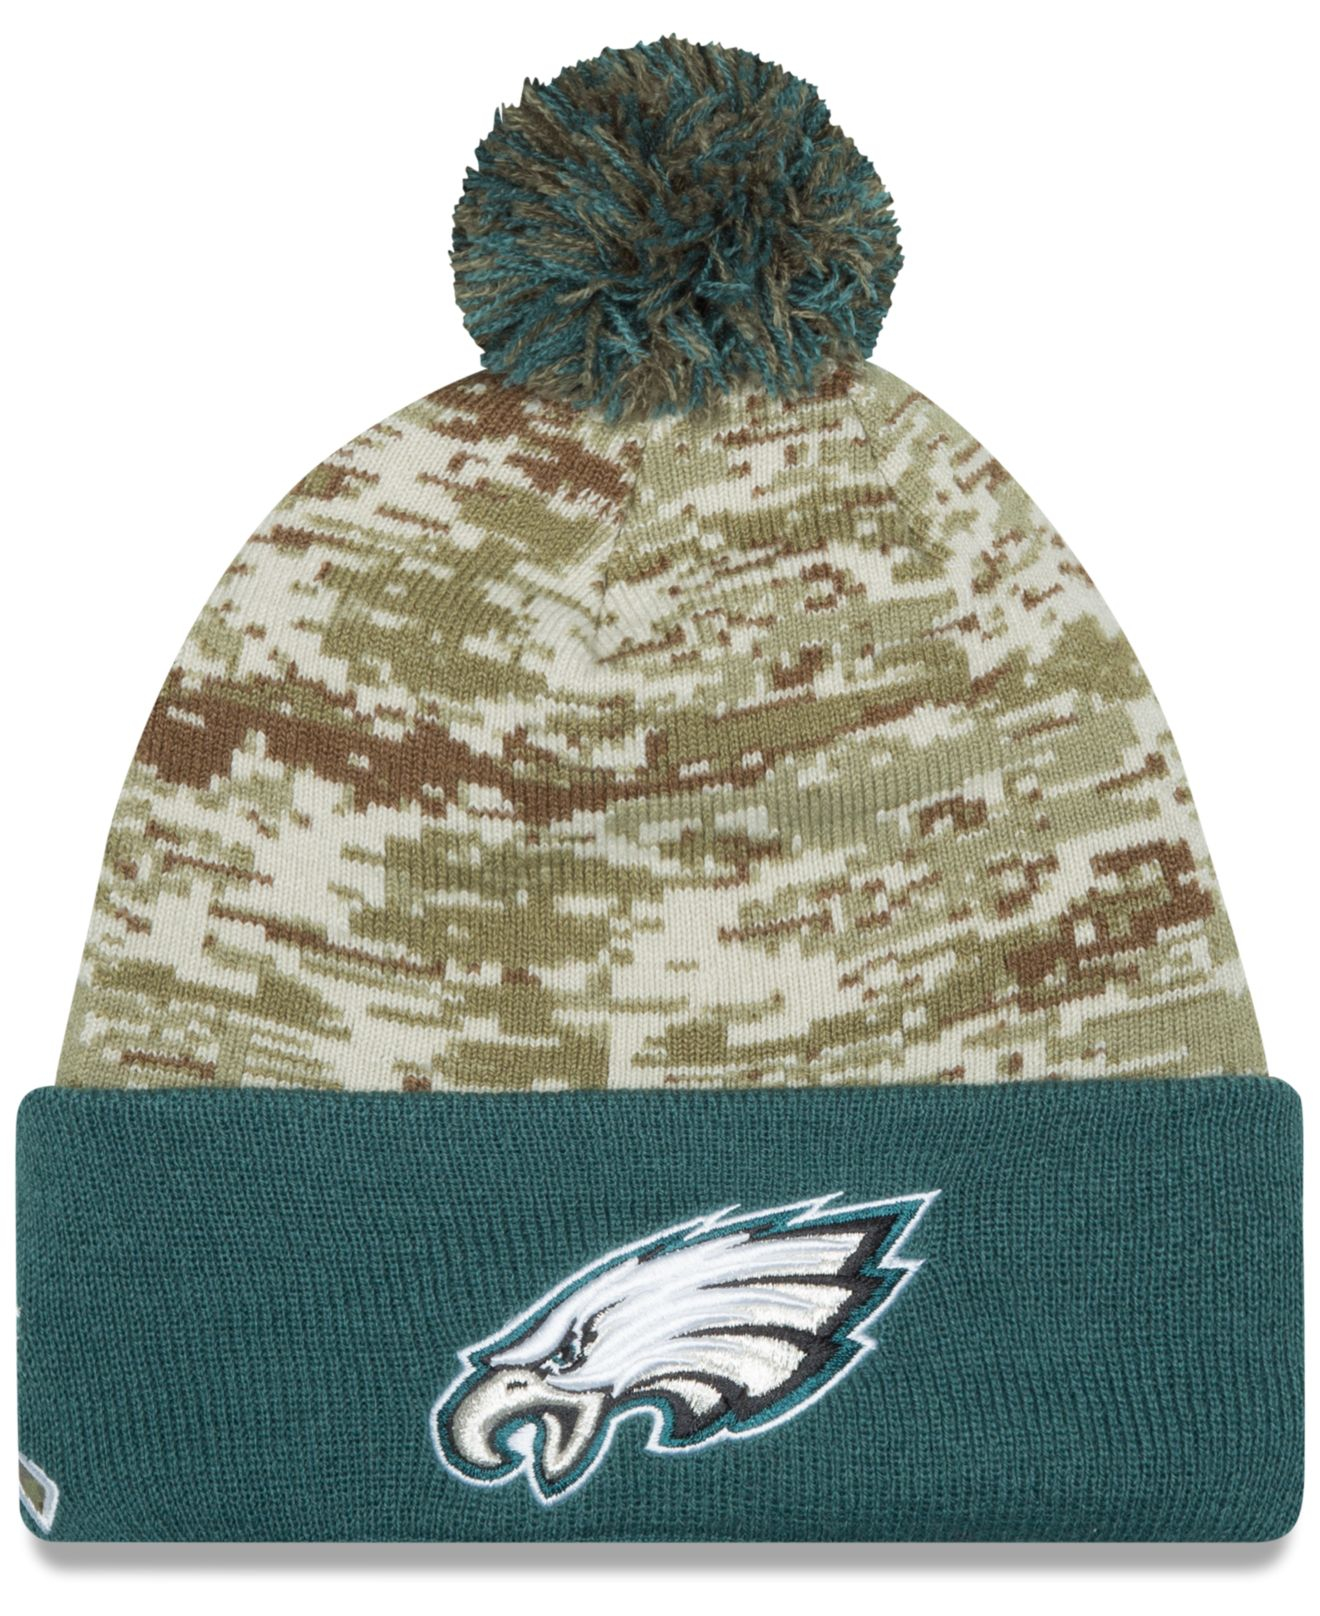 829cb7e6807 new zealand philadelphia eagles salute to service hat 827b8 6e650